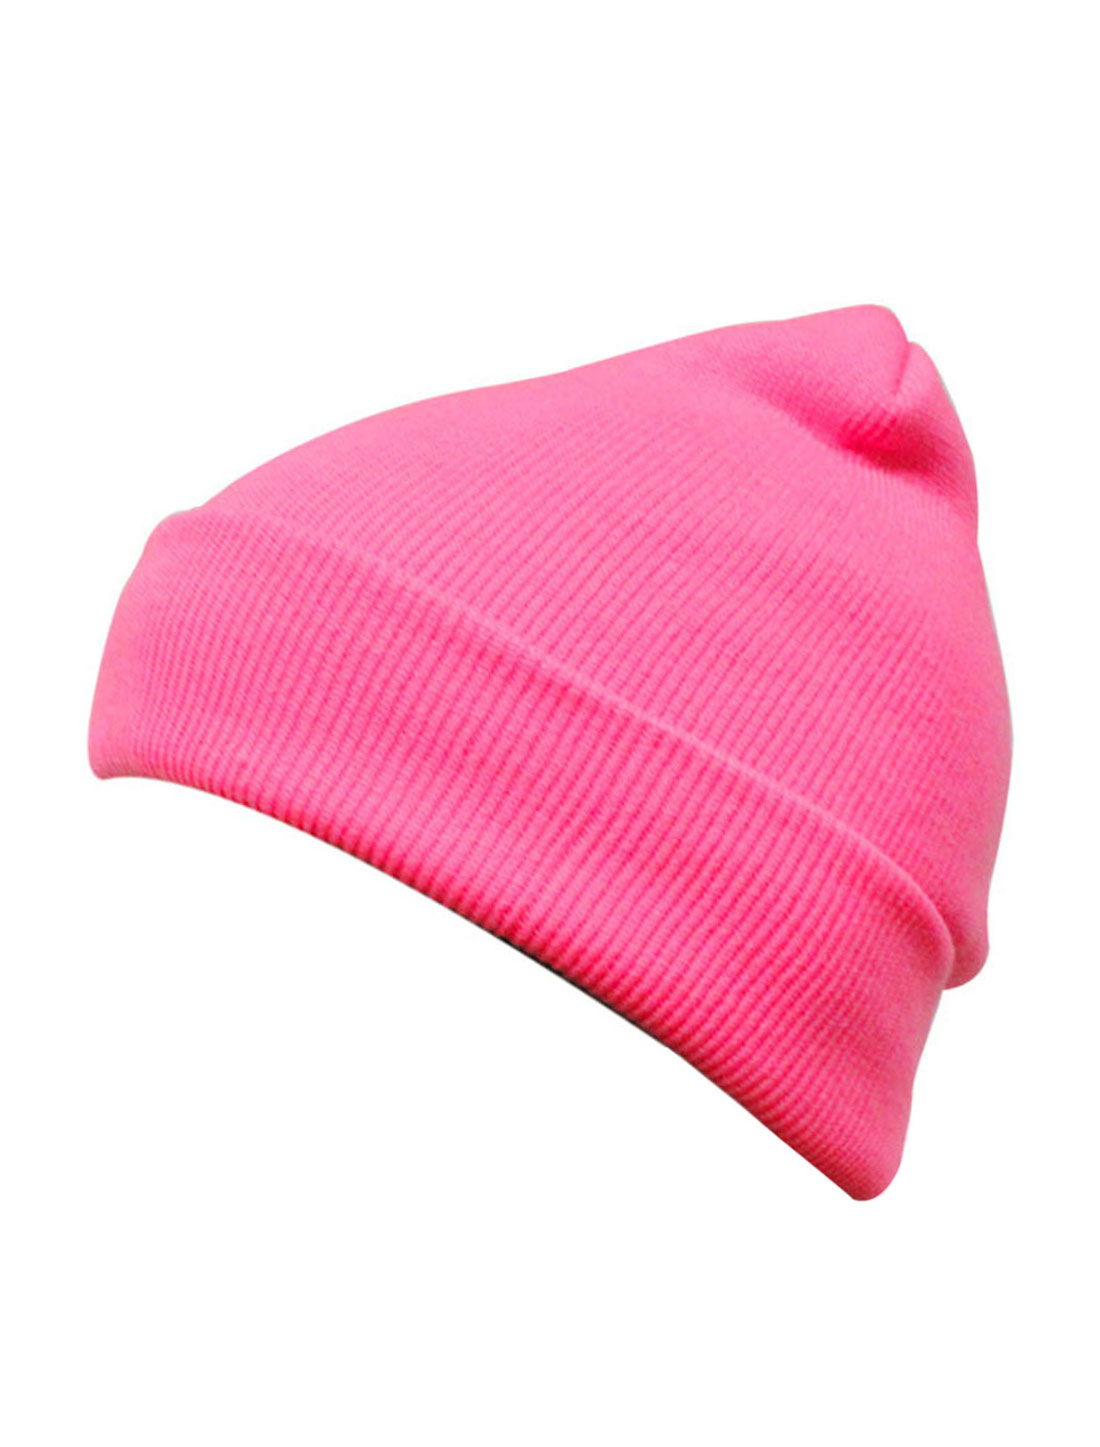 Unisex Fluorescent Pink Korea New Fashion Slouchy Headwear